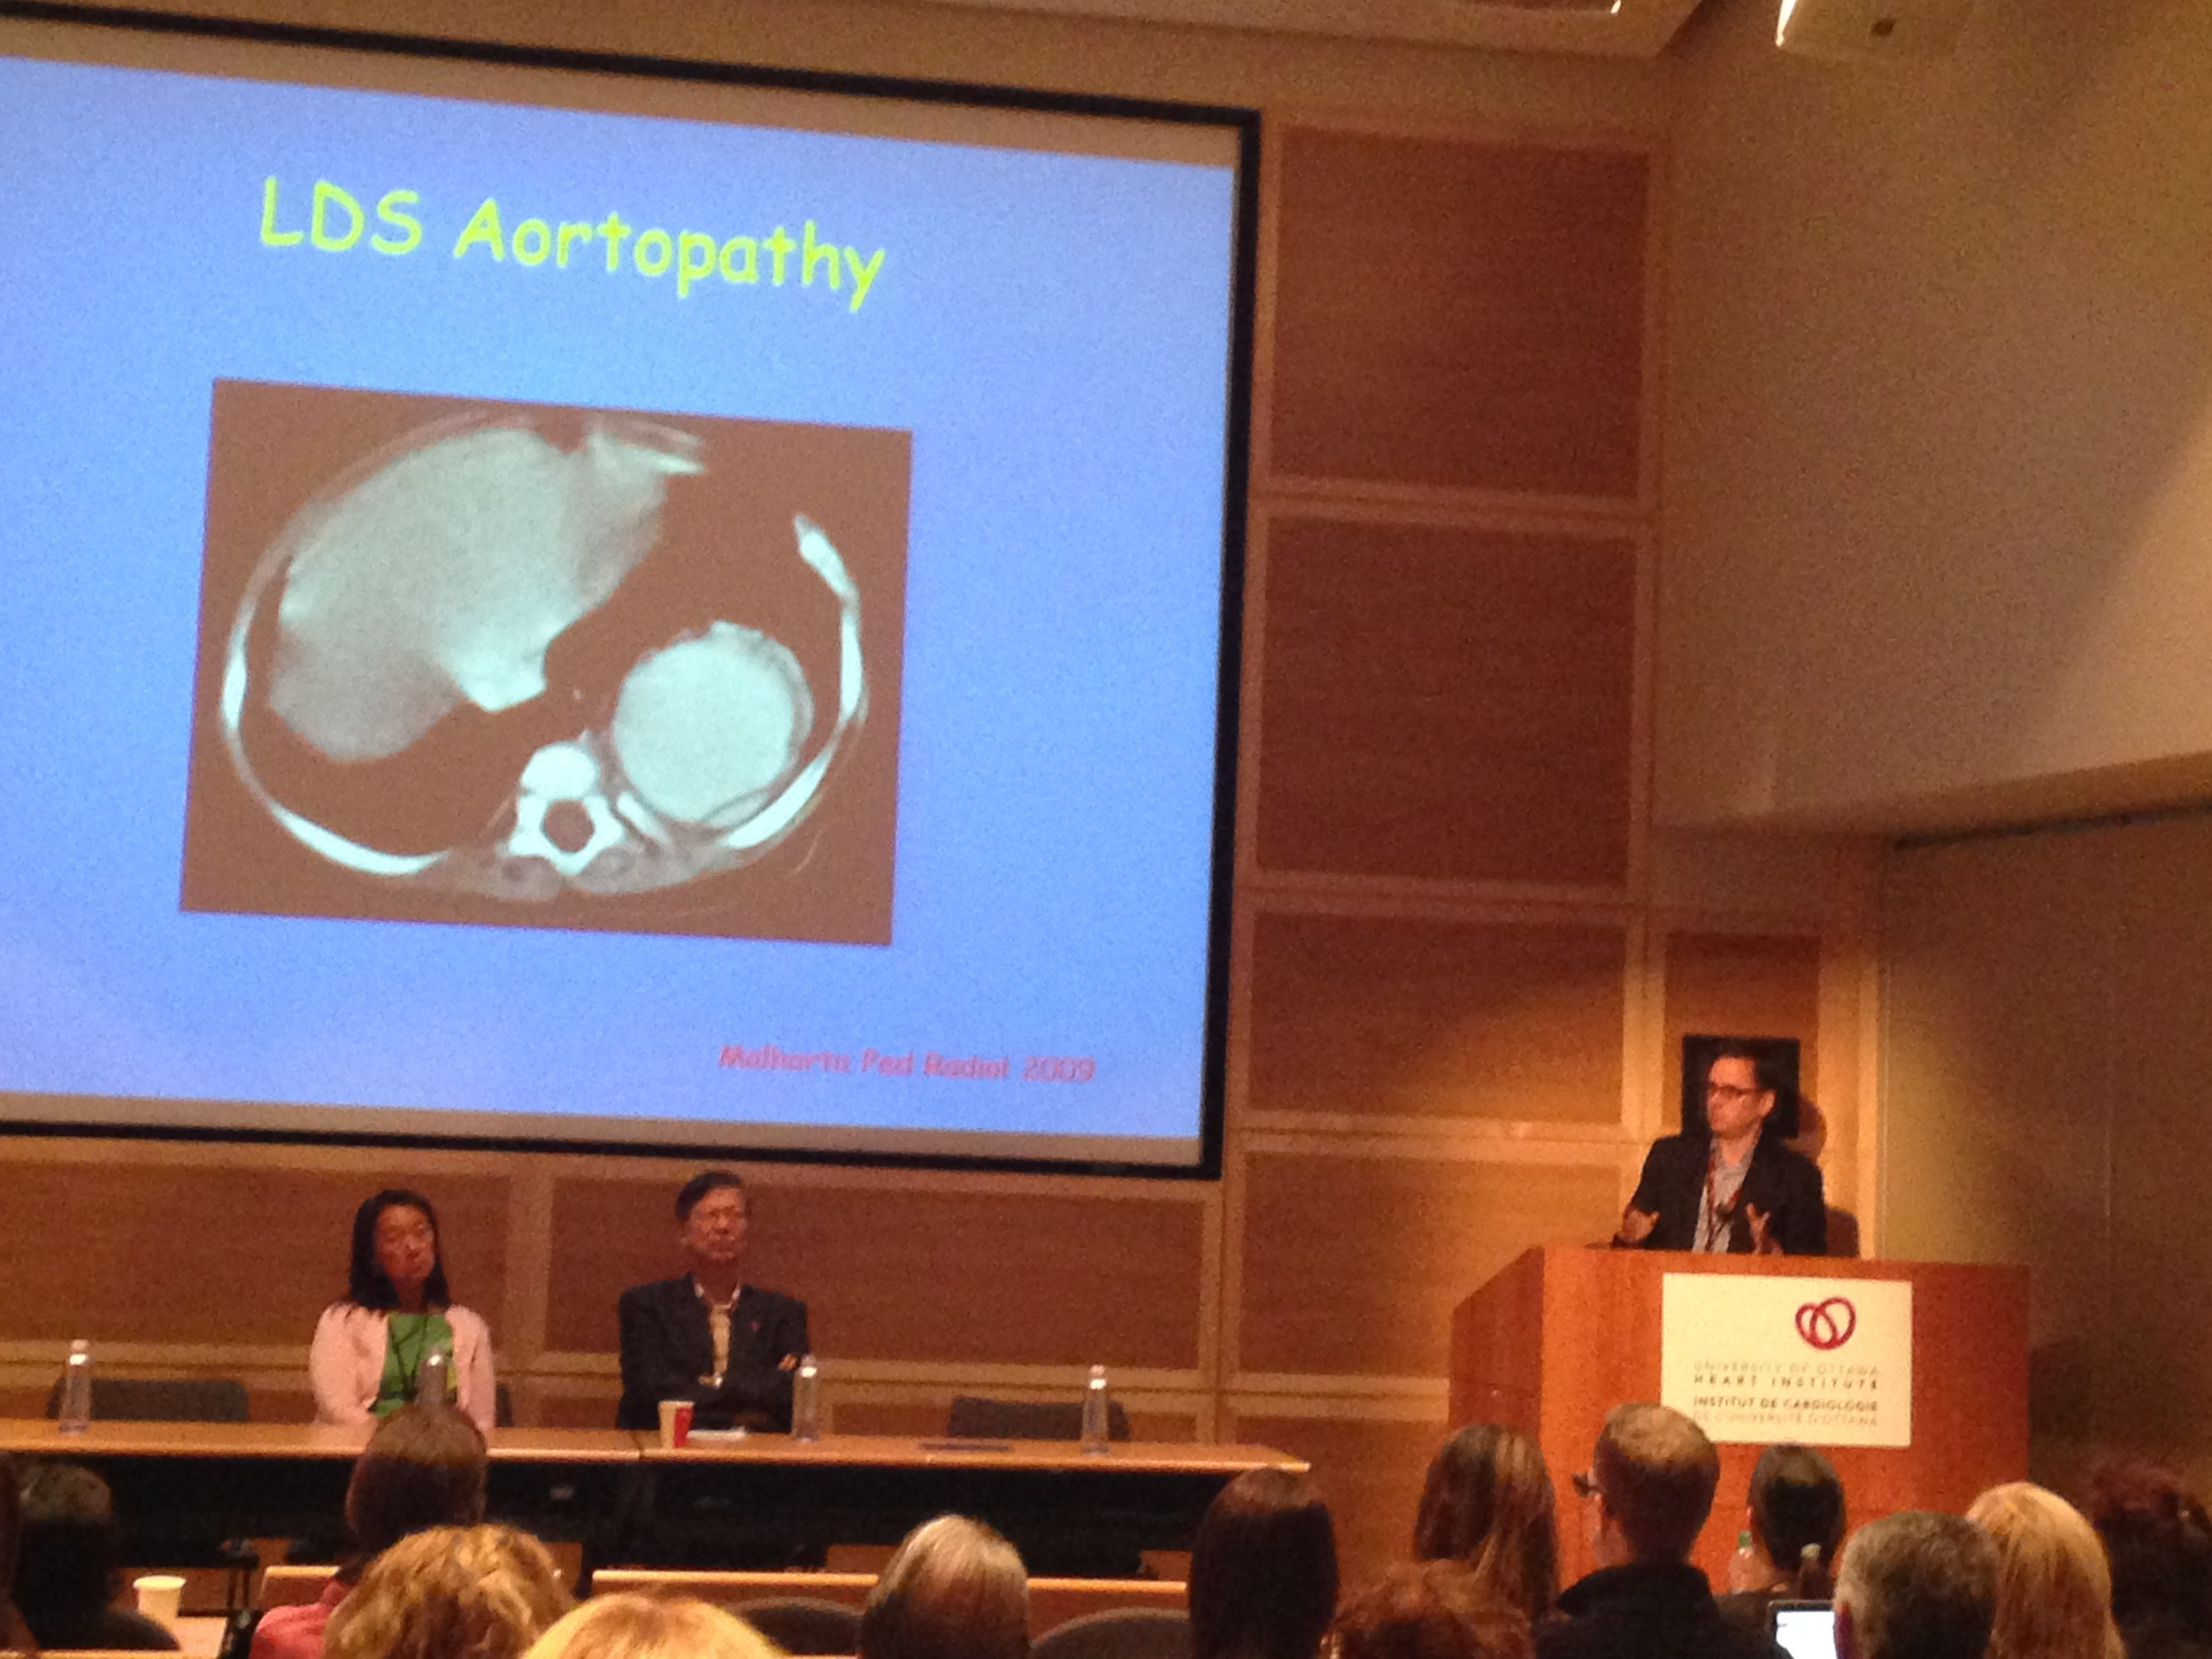 Dr Luc Beauchesne, UOHI - Other Genetic Aortic Disorders